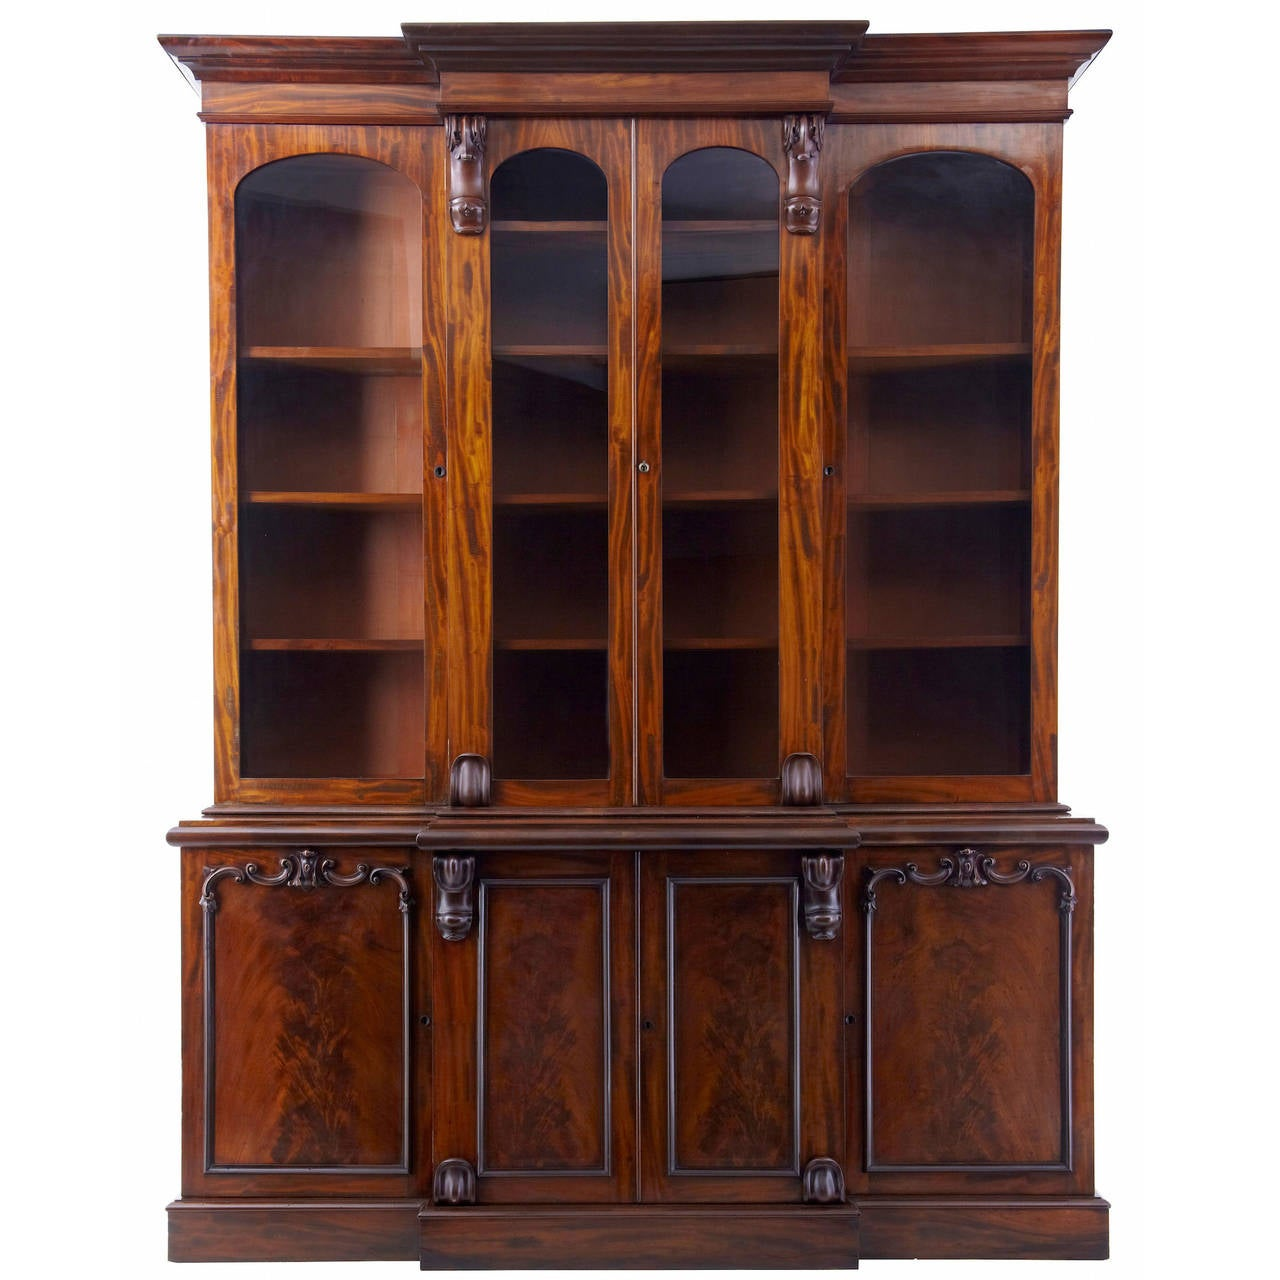 Early Victorian 19th Century Flame Mahogany Breakfront Bookcase